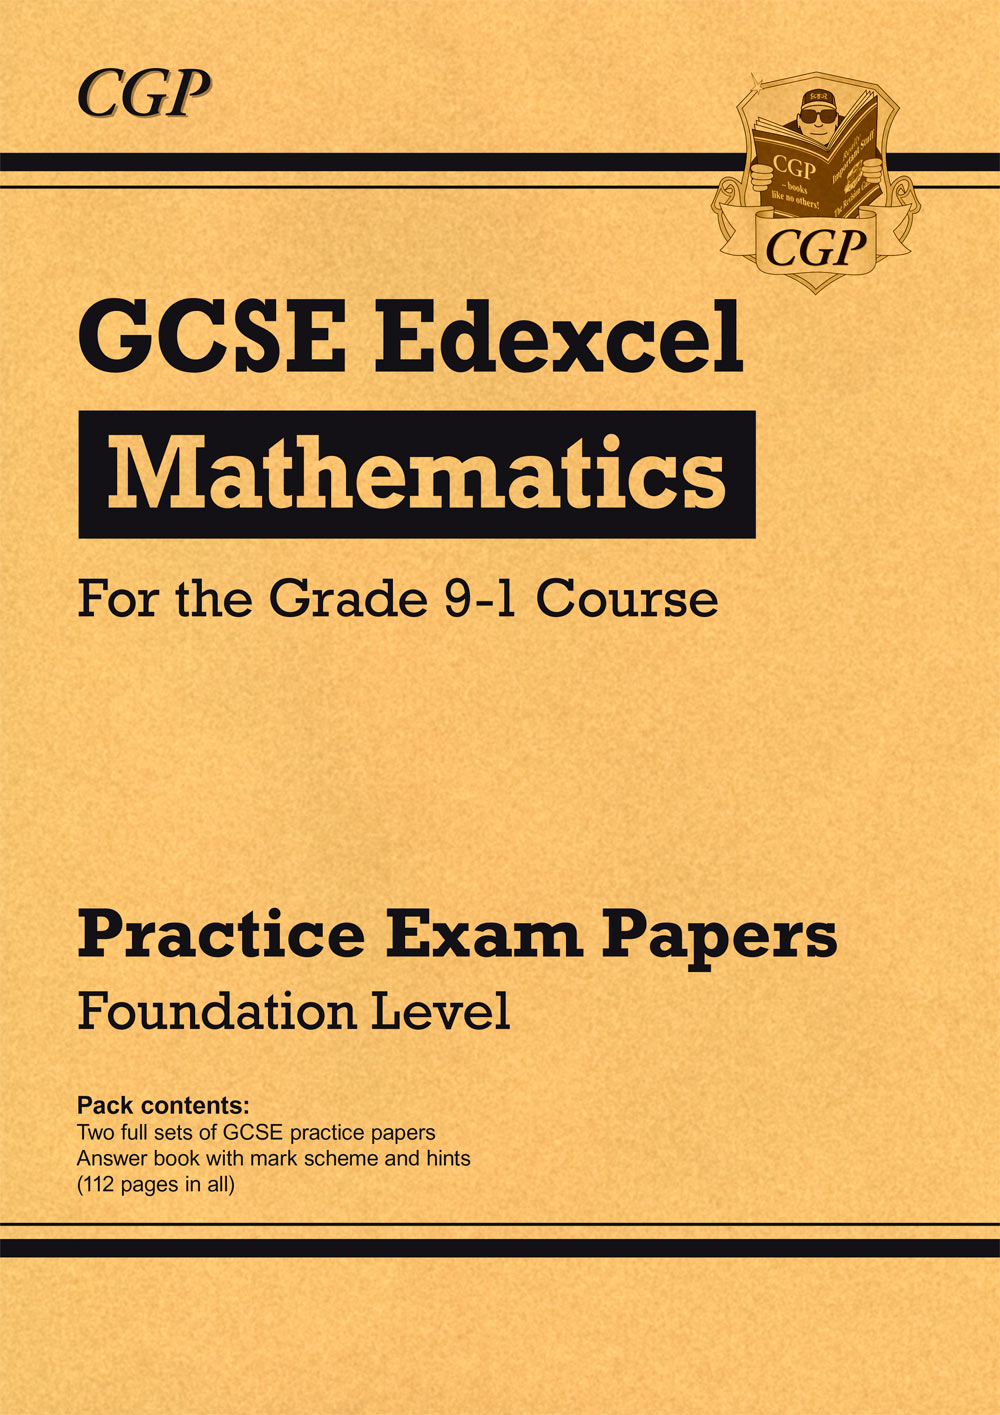 MXFP43 - GCSE Maths Edexcel Practice Papers: Foundation - for the Grade 9-1 Course